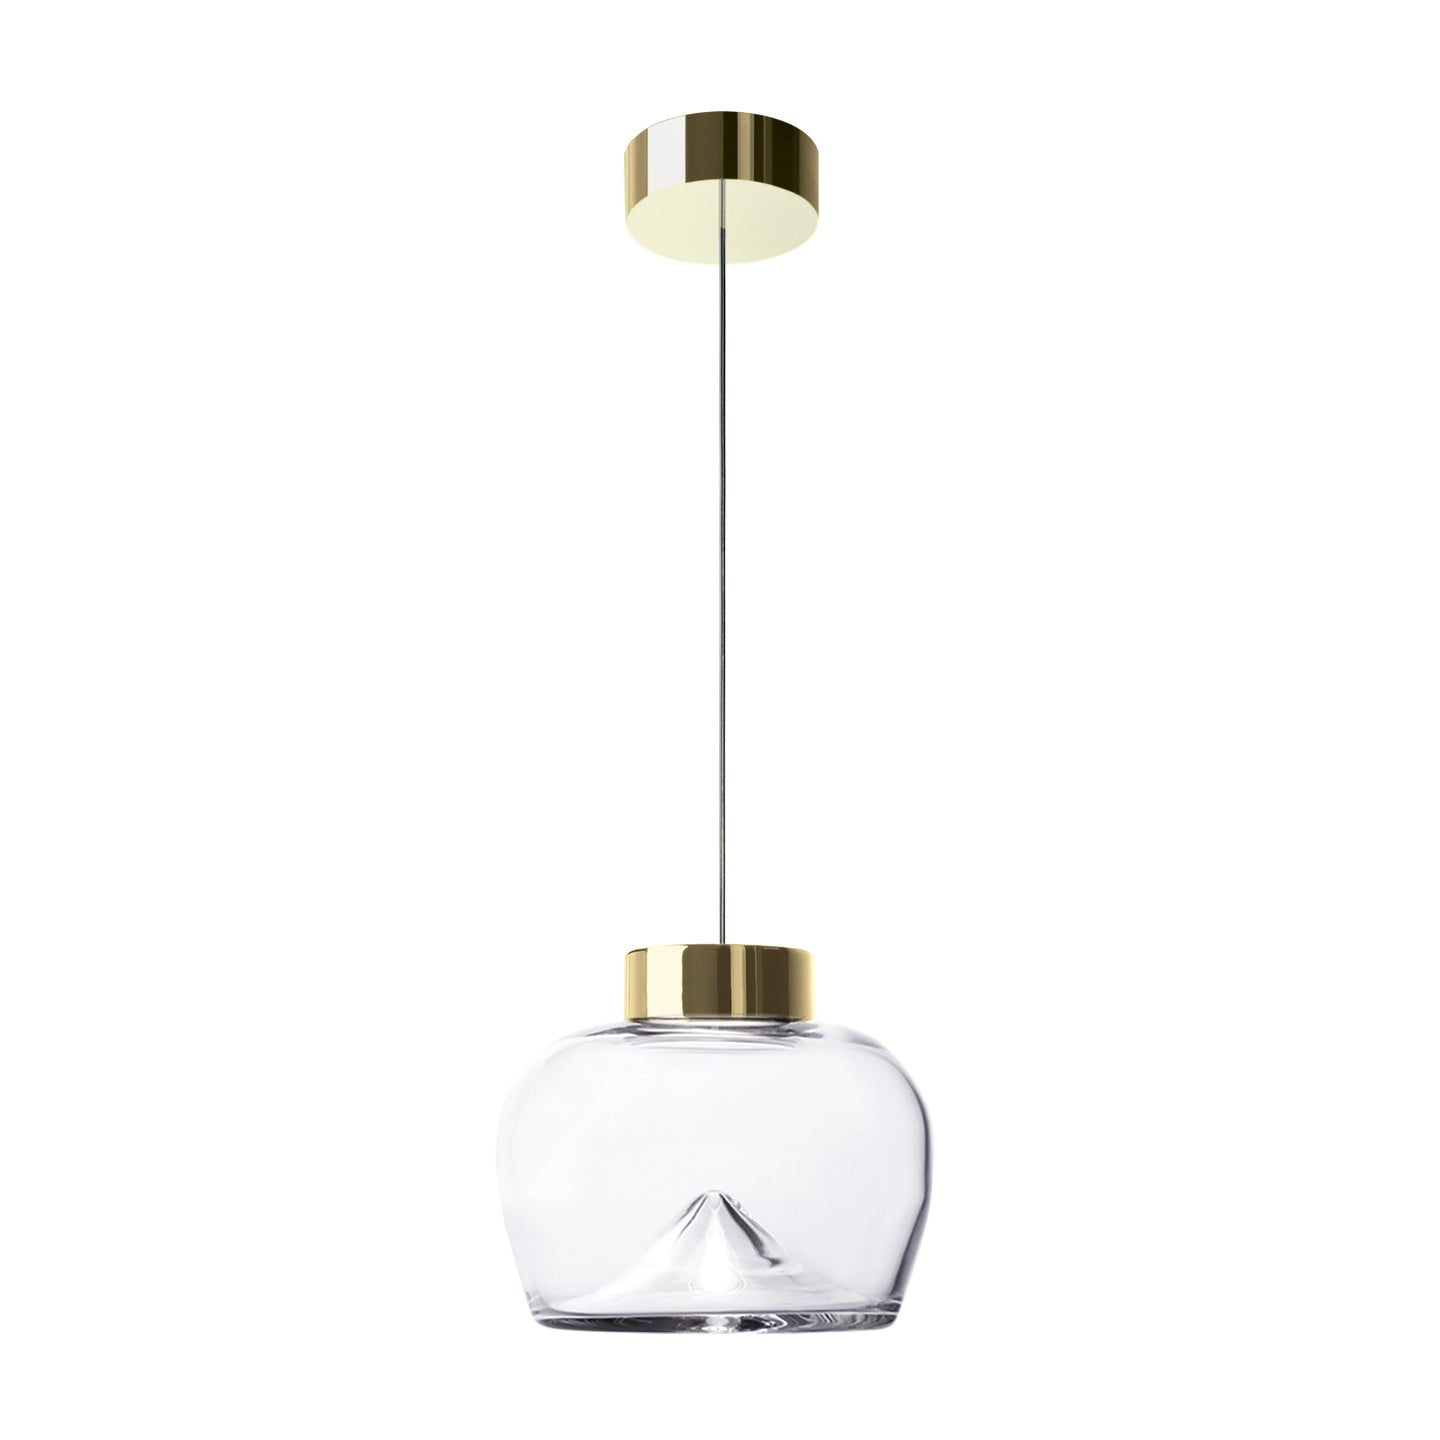 Leucos Aella Bold S LED Pendant Light in Transparent and Gold by Toso & Massari